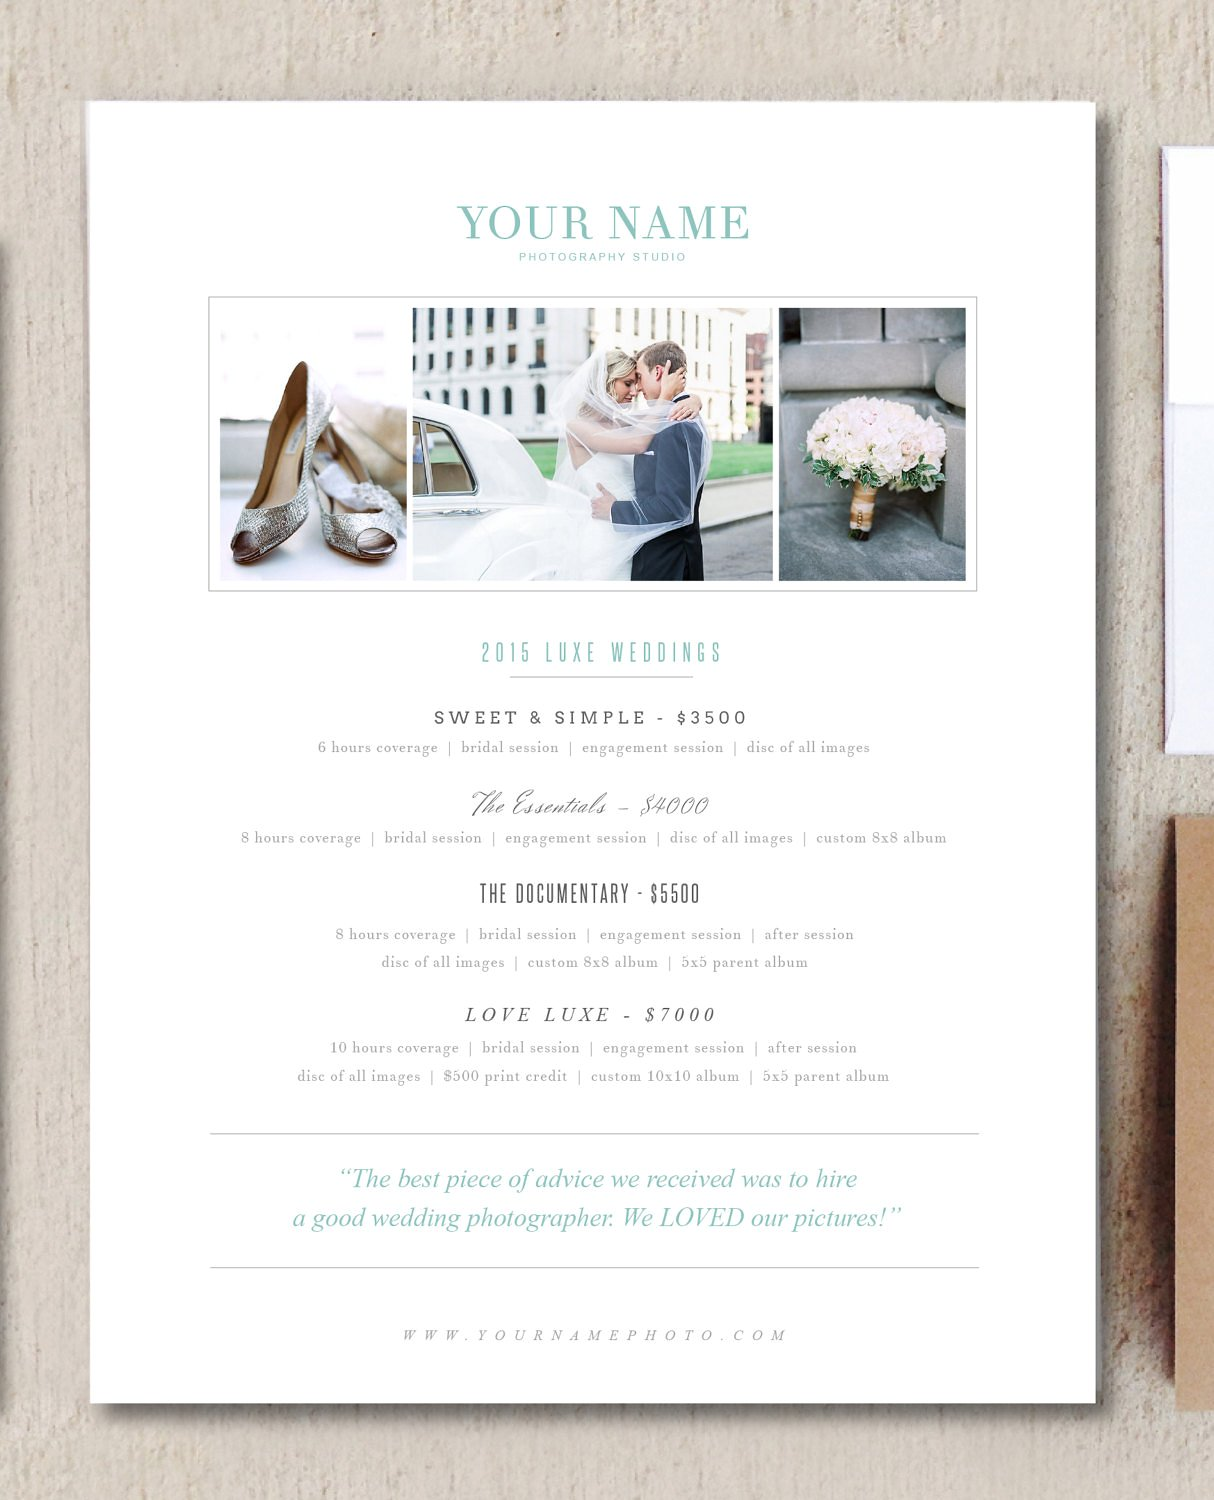 Free Pricing Guide Template Design for Wedding Photographers the